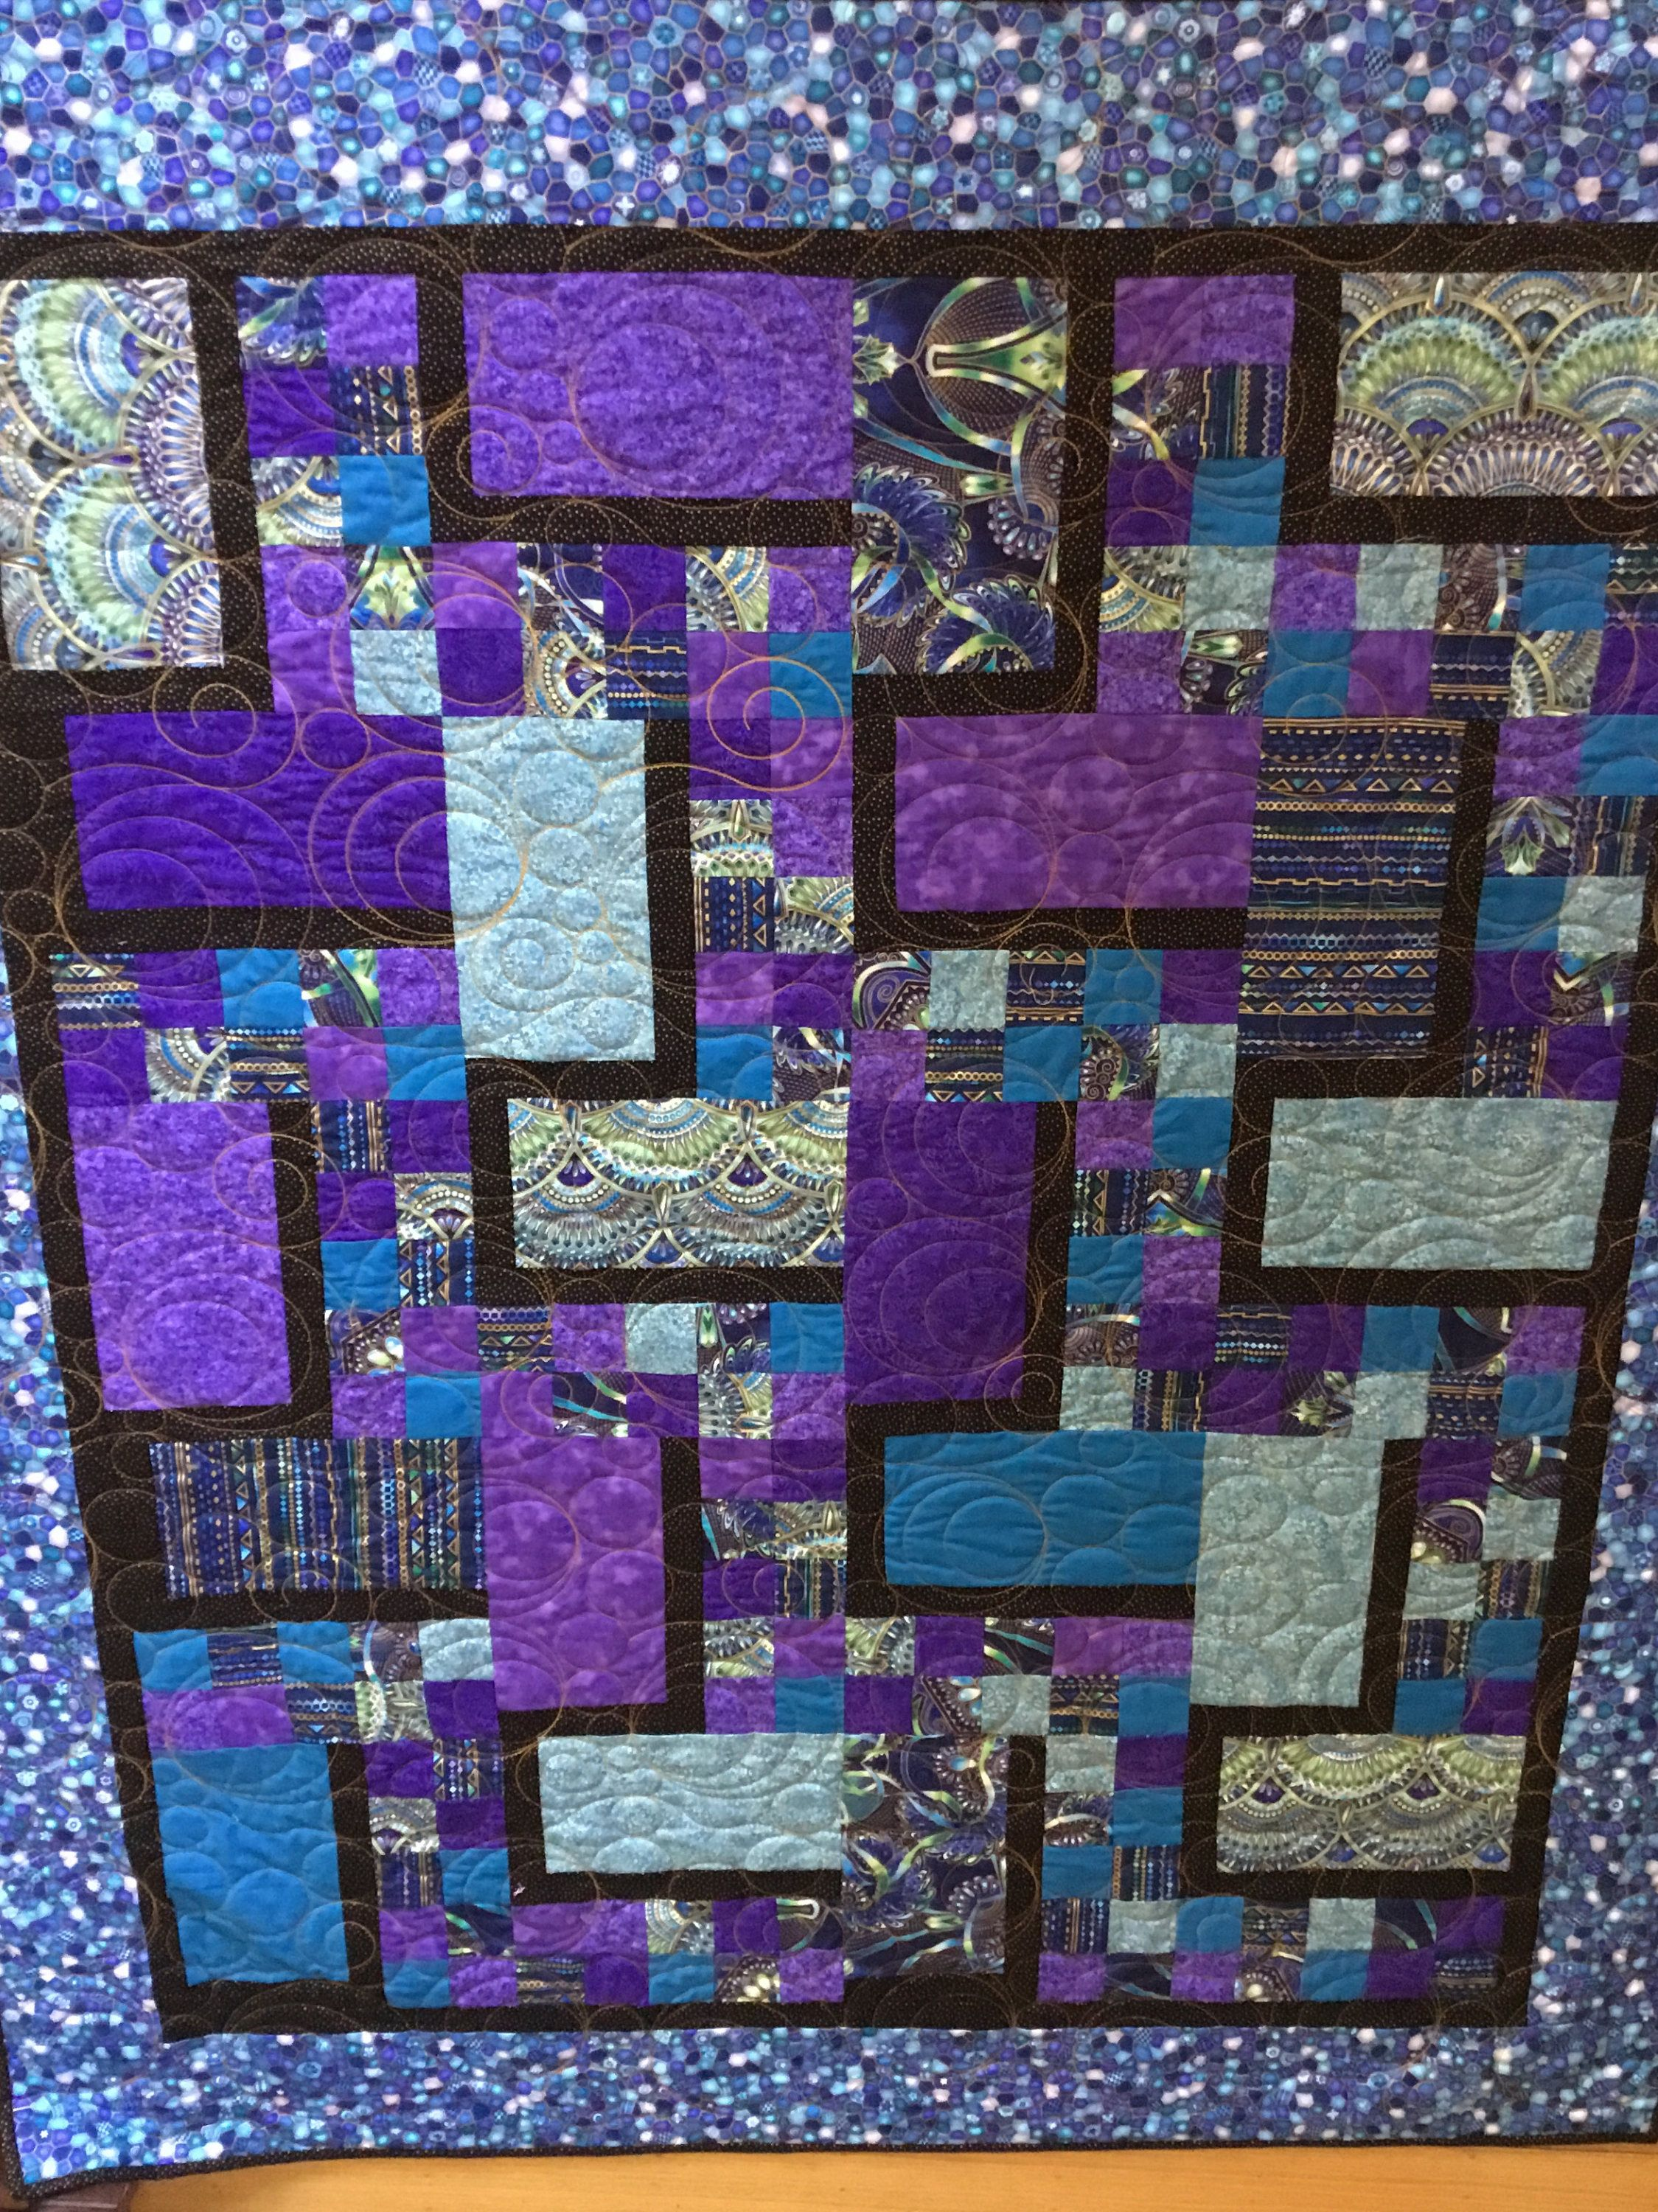 Jewel Tones Quilt, Quilts for Sale, Handmade Quilts, Homemade ... : where to sell handmade quilts - Adamdwight.com